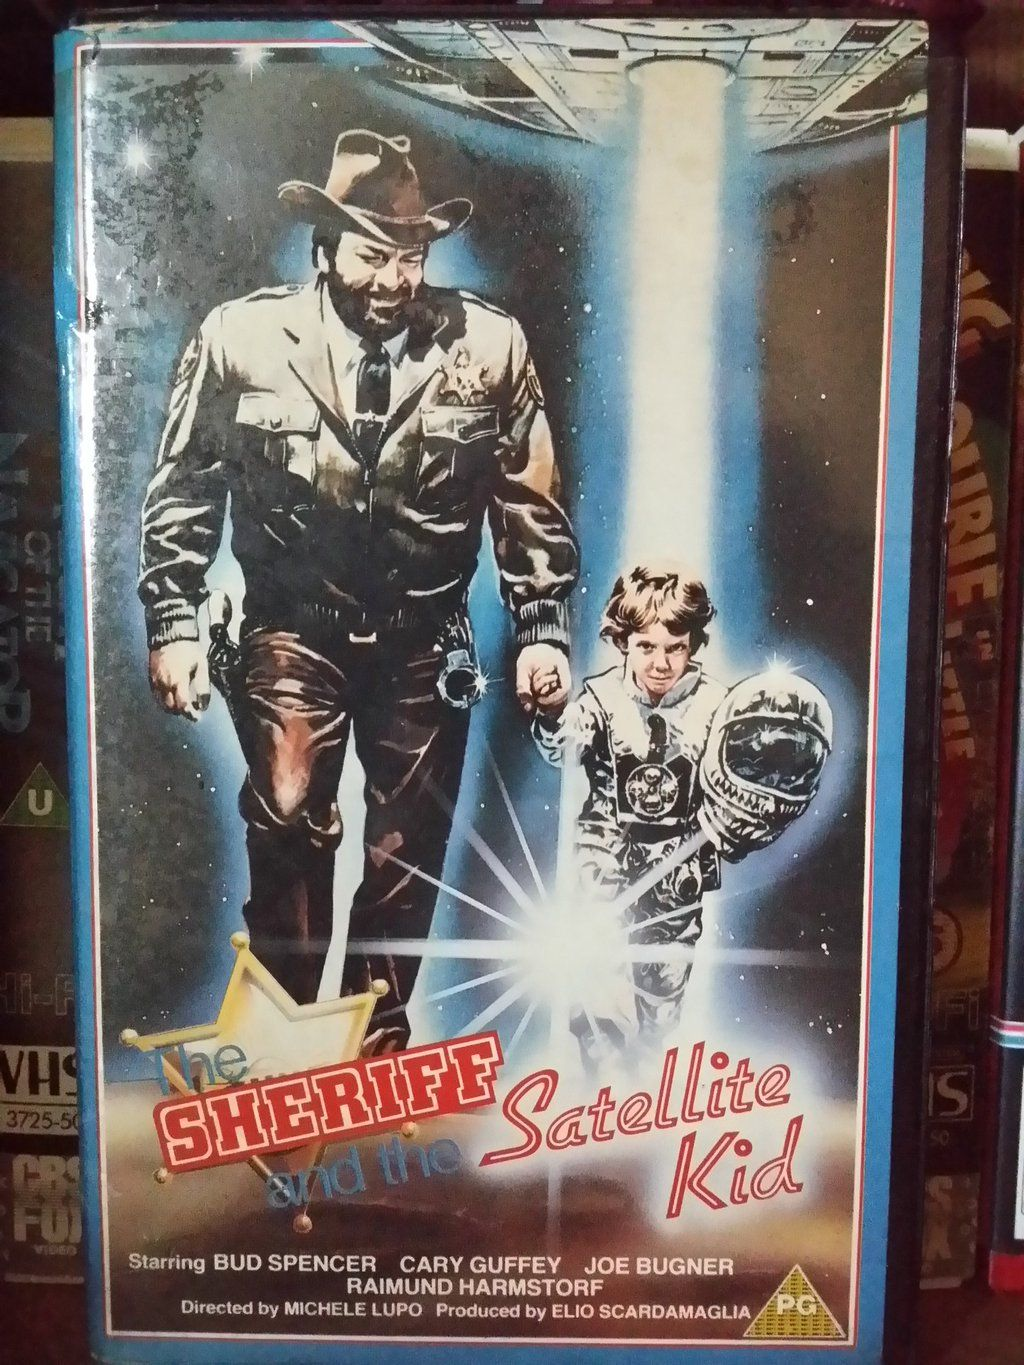 """The Sci-Fi Shed on Twitter: """"Final Ex-rental #VHS find of the day is THE SHERIFF AND THE SATELLITE KID...Dedicated to Astronaut @astro_timpeake https://t.co/uX5cH0kgf3"""""""